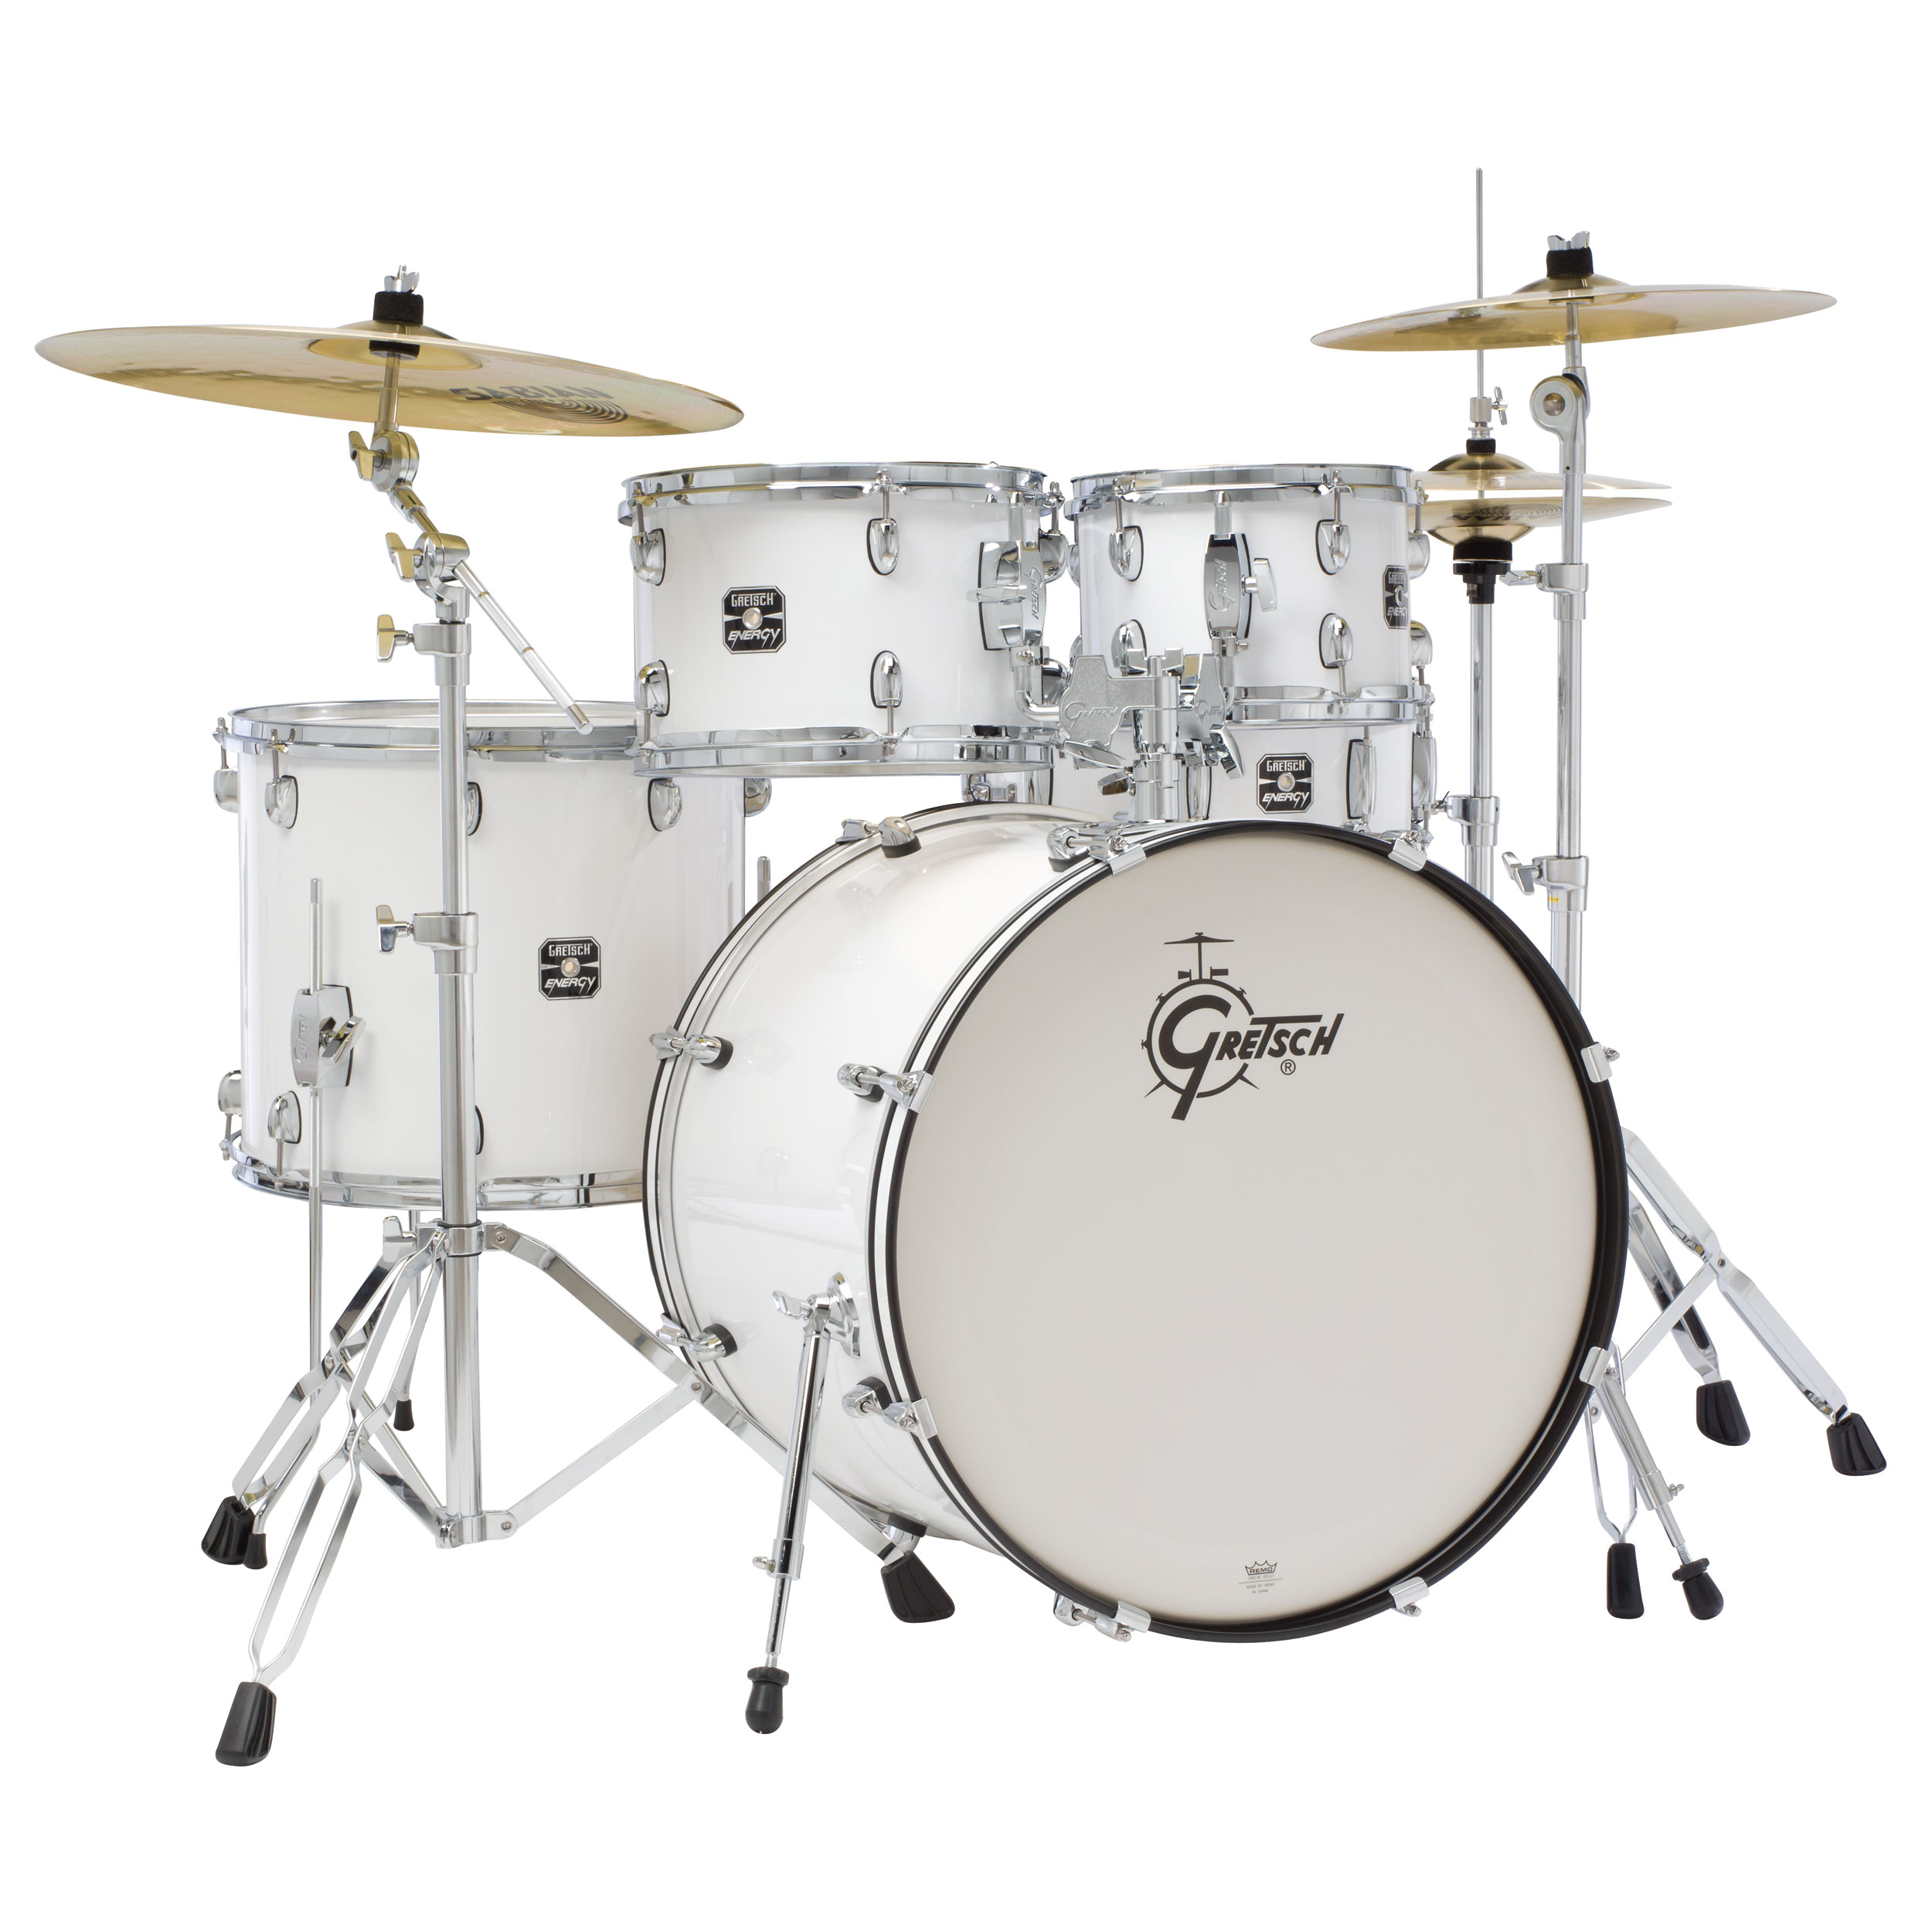 "Gretsch Energy Series Drum Set with Hardware and Sabian SBR Cymbals (22"" Bass, 10/12/16"" Toms, 14"" Snare)"